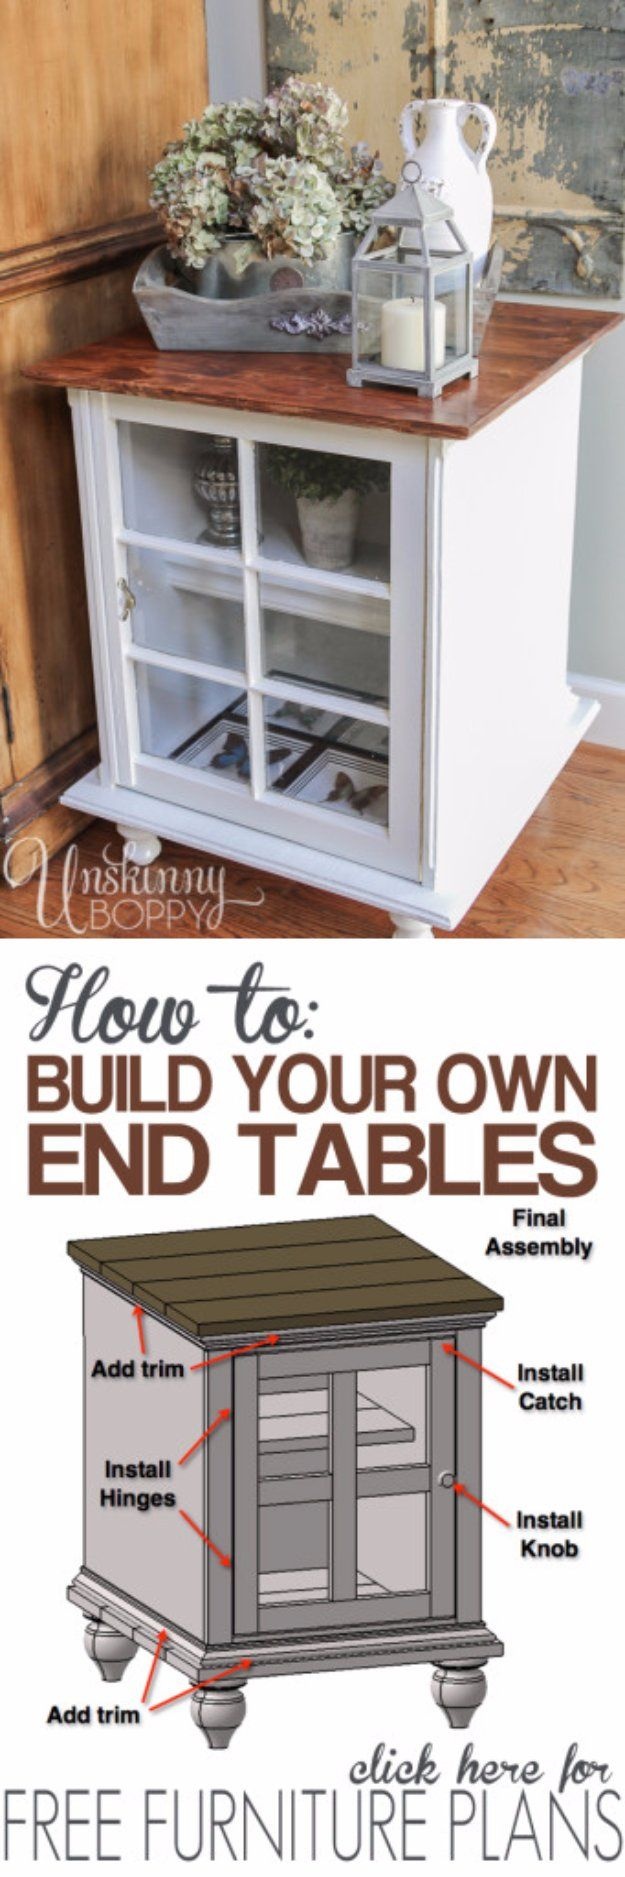 DIY End Tables with Step by Step Tutorials - Homemade End Table From Old Windows - Cheap and Easy End Table Projects and Plans - Wood, Storage, Pallet, Crate, Modern and Rustic. Bedroom and Living Room Decor Ideas http://diyjoy.com/diy-end-tables